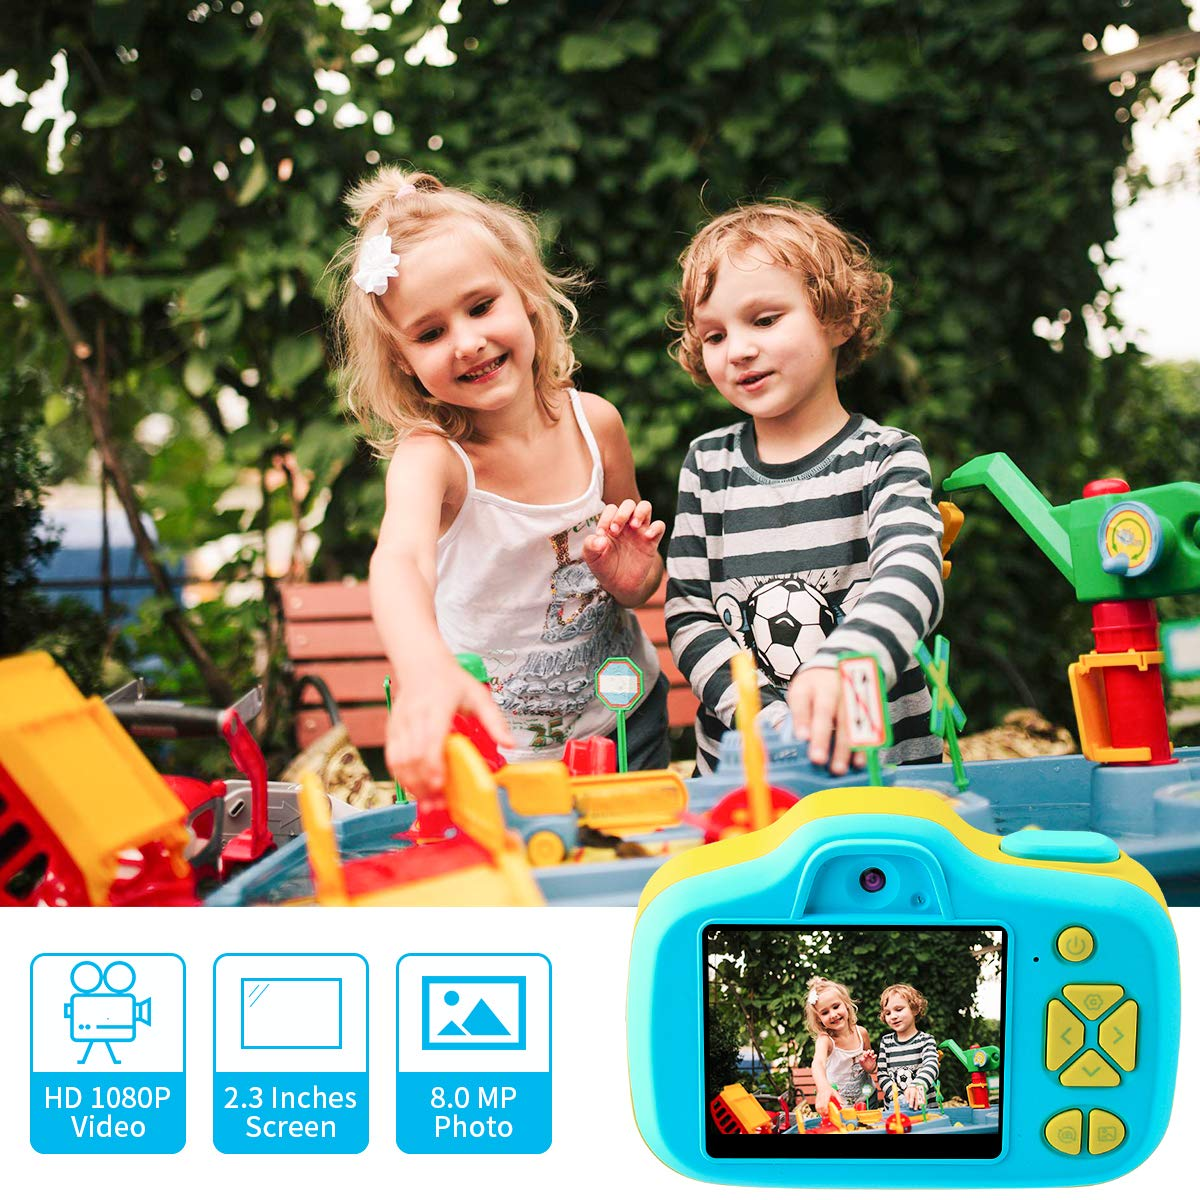 Joytrip Kids Camera Gifts,Front and Rear Selfie Children Camcorder,2.3 Inches Screen,for Boys,Blue by Joytrip (Image #2)